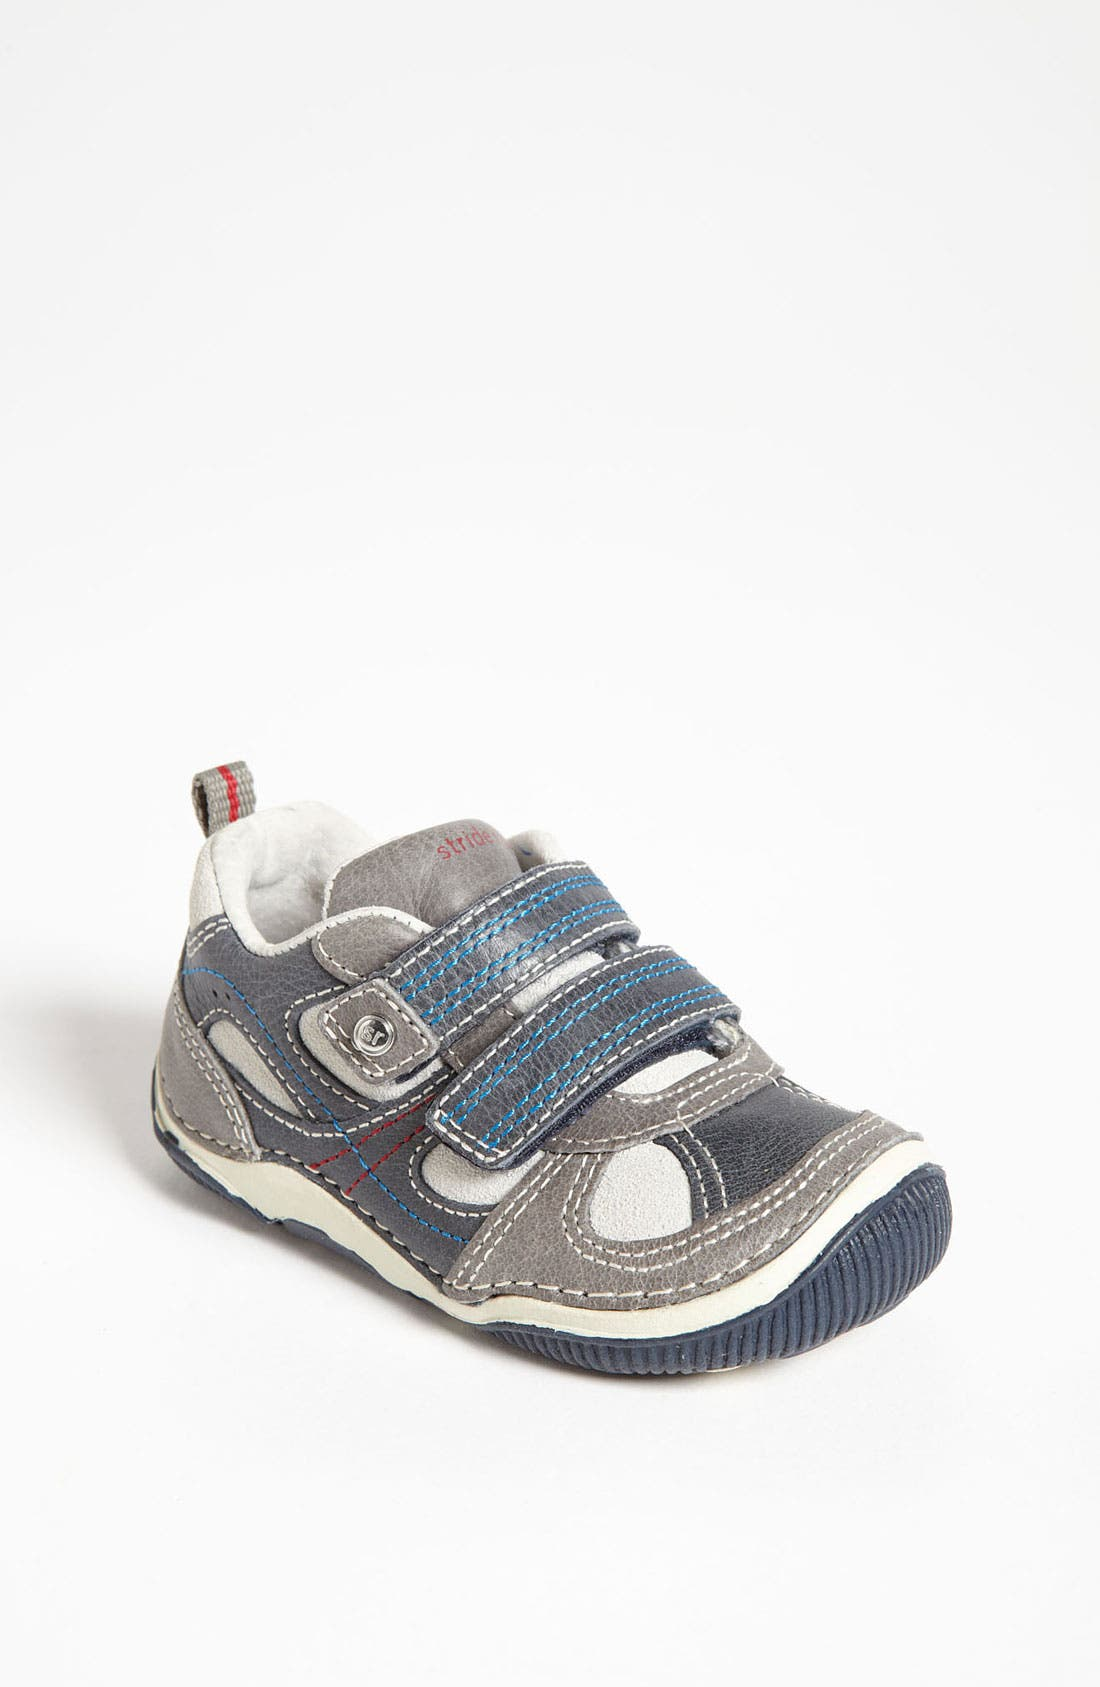 Alternate Image 1 Selected - Stride Rite 'Woody' Sneaker (Baby, Walker & Toddler)